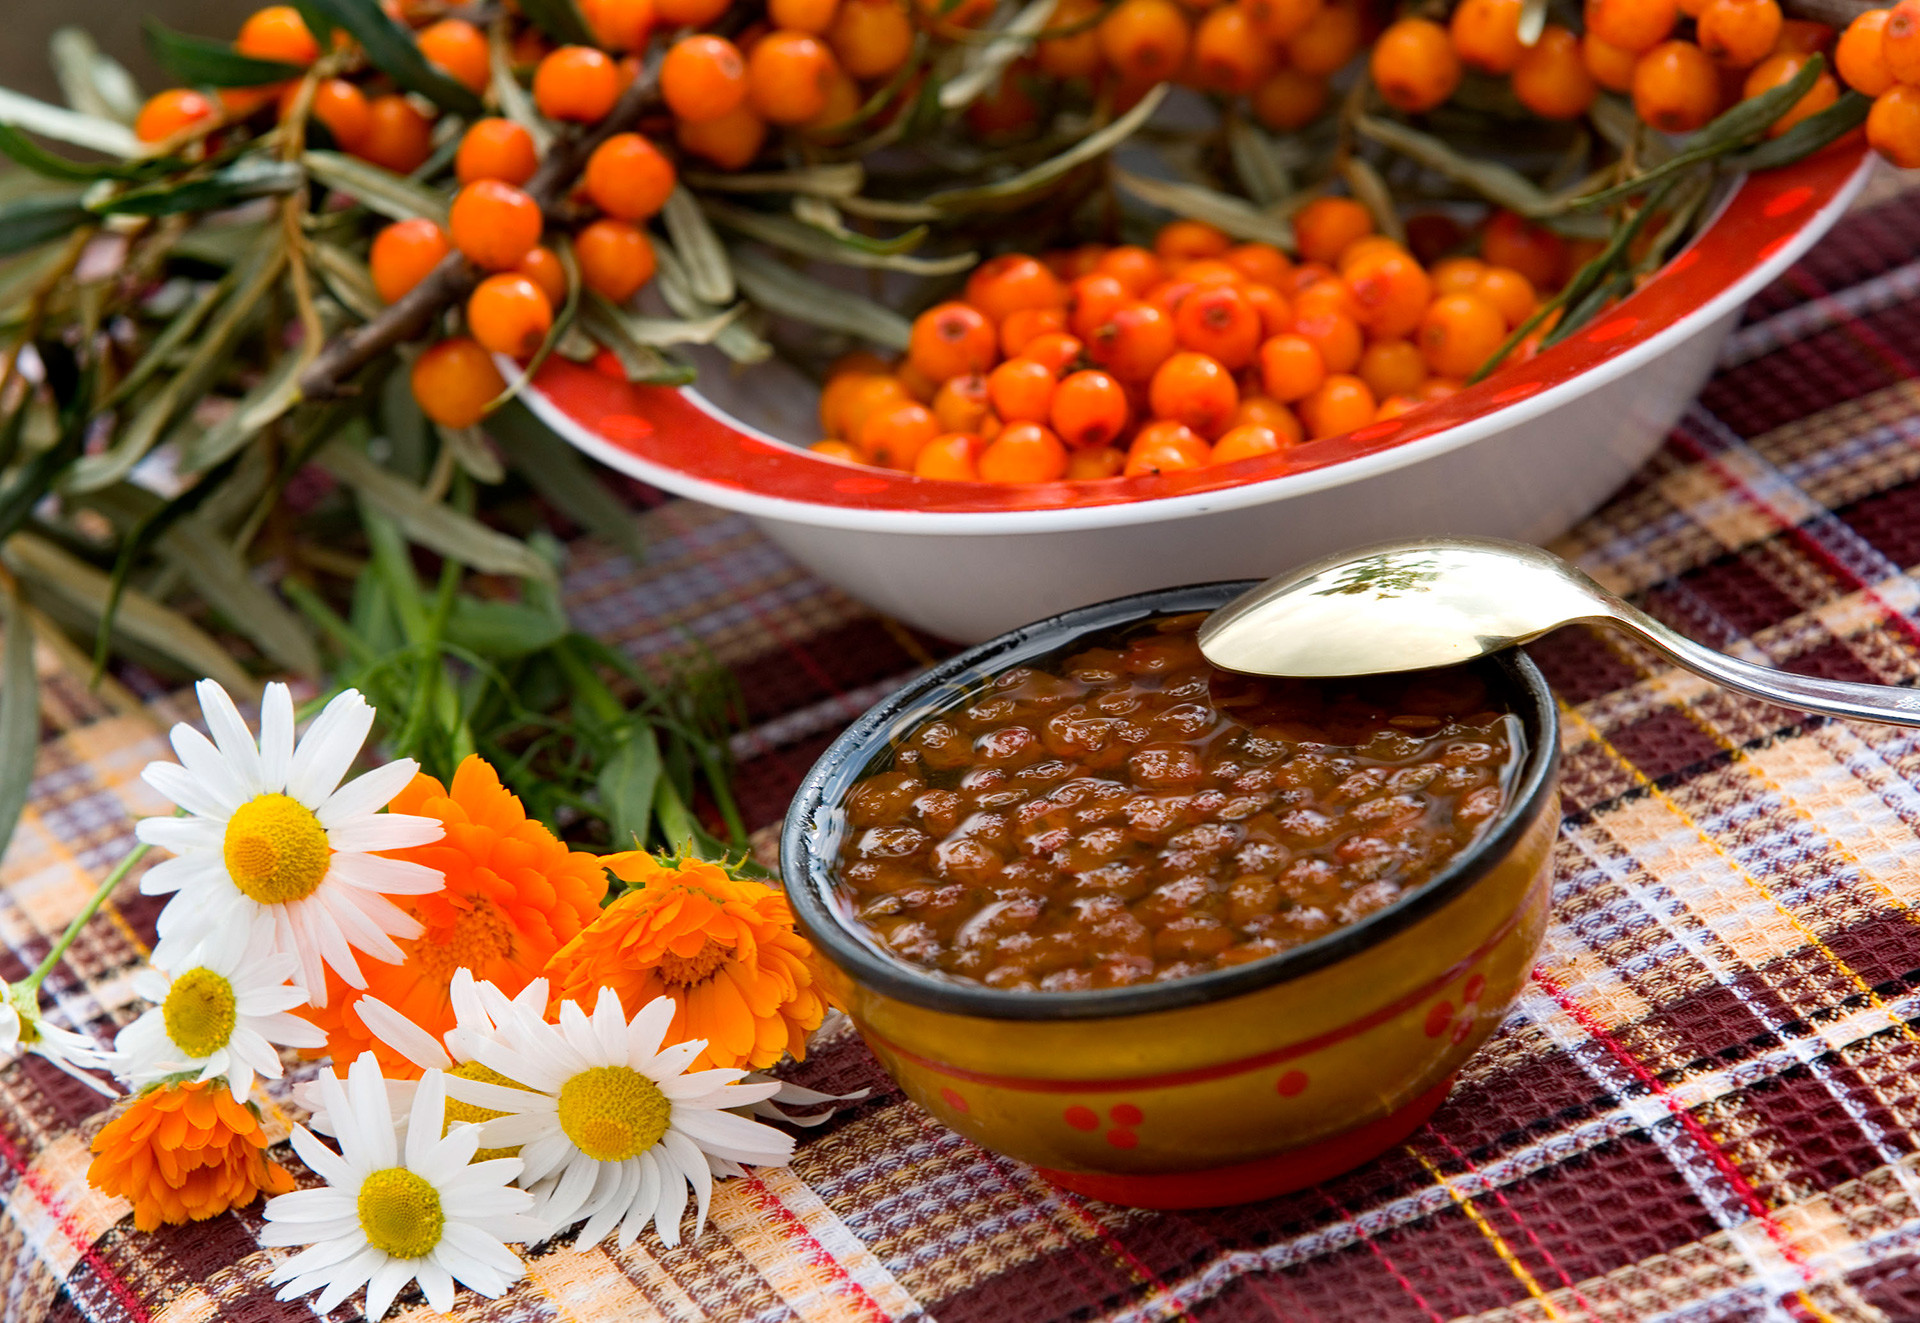 Sea buckthorn grows almost everywhere in Russia.